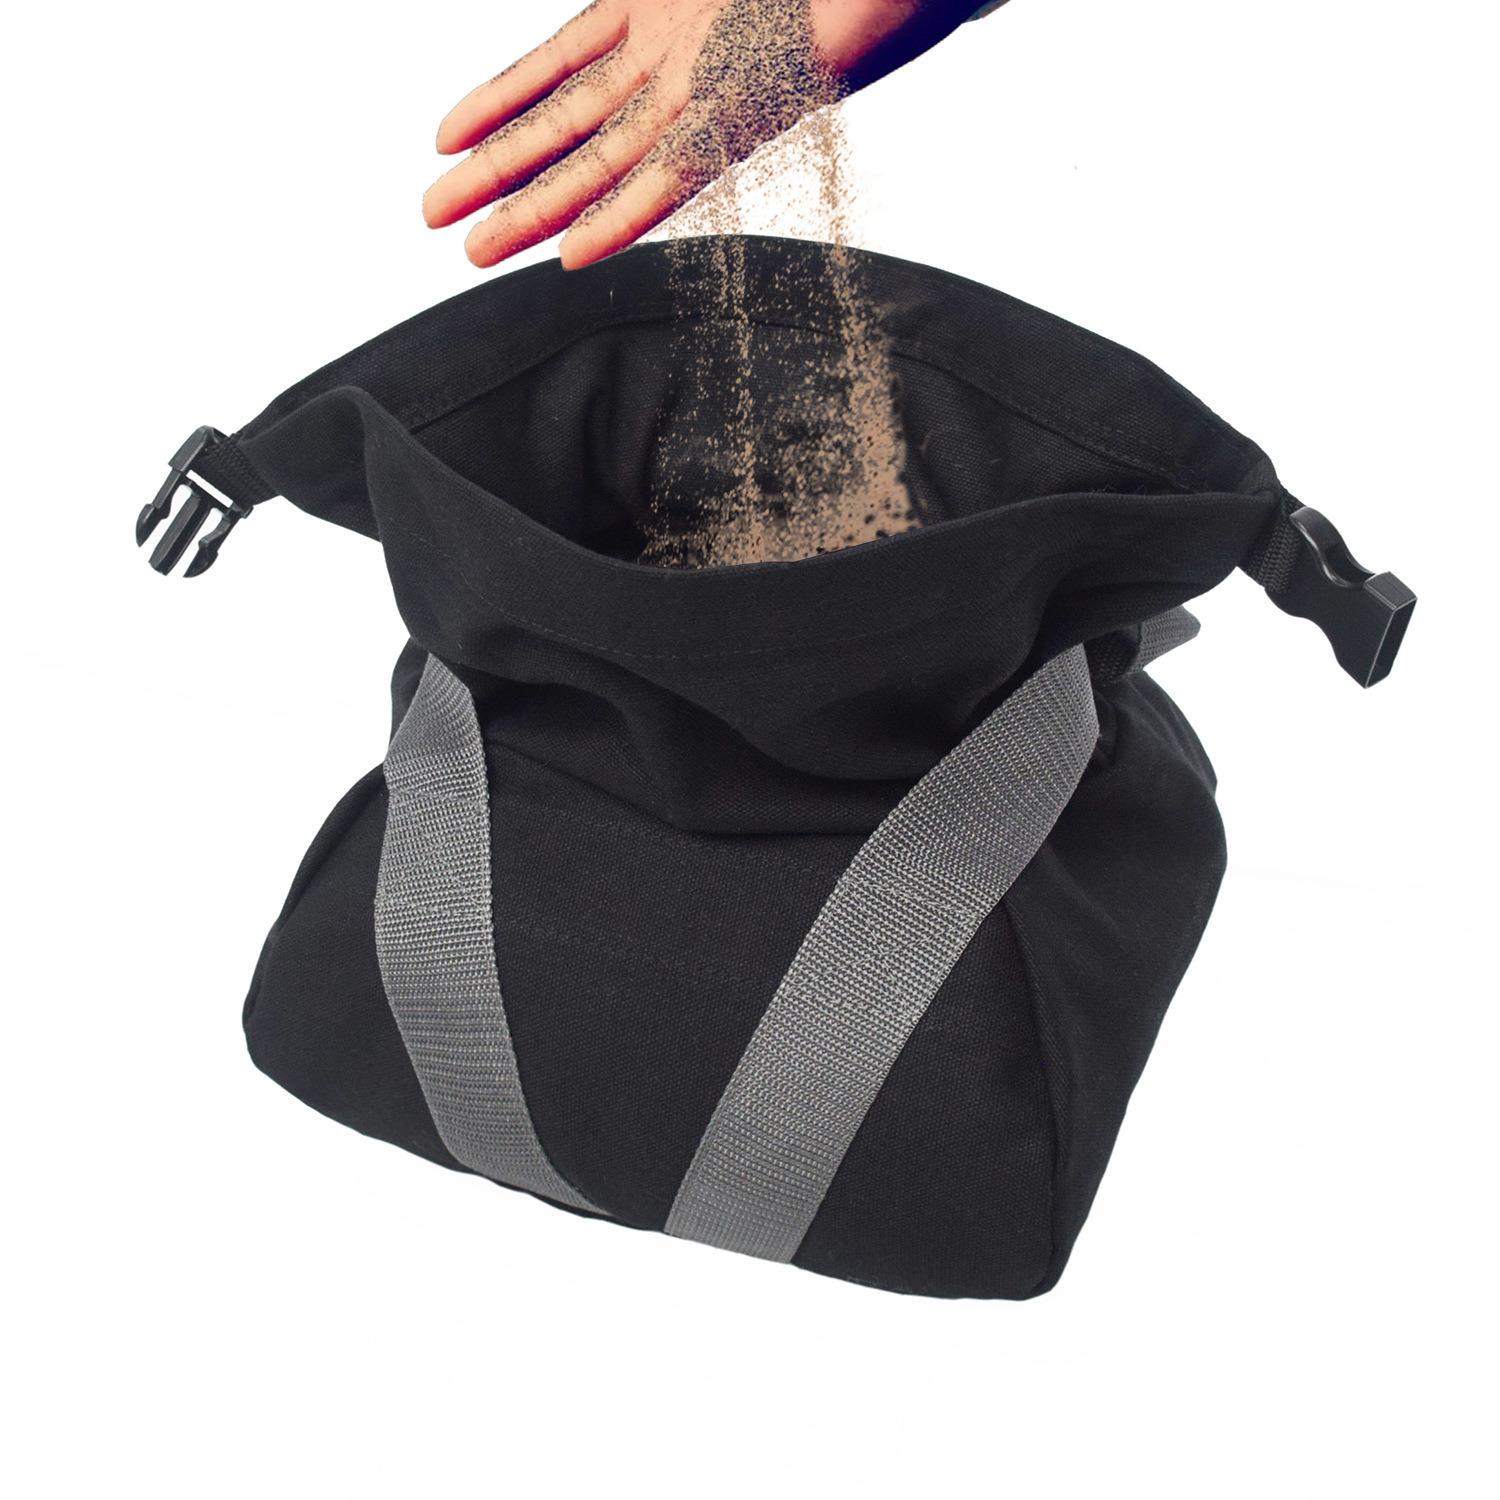 Sand Filled Bag Weight Training Fitness